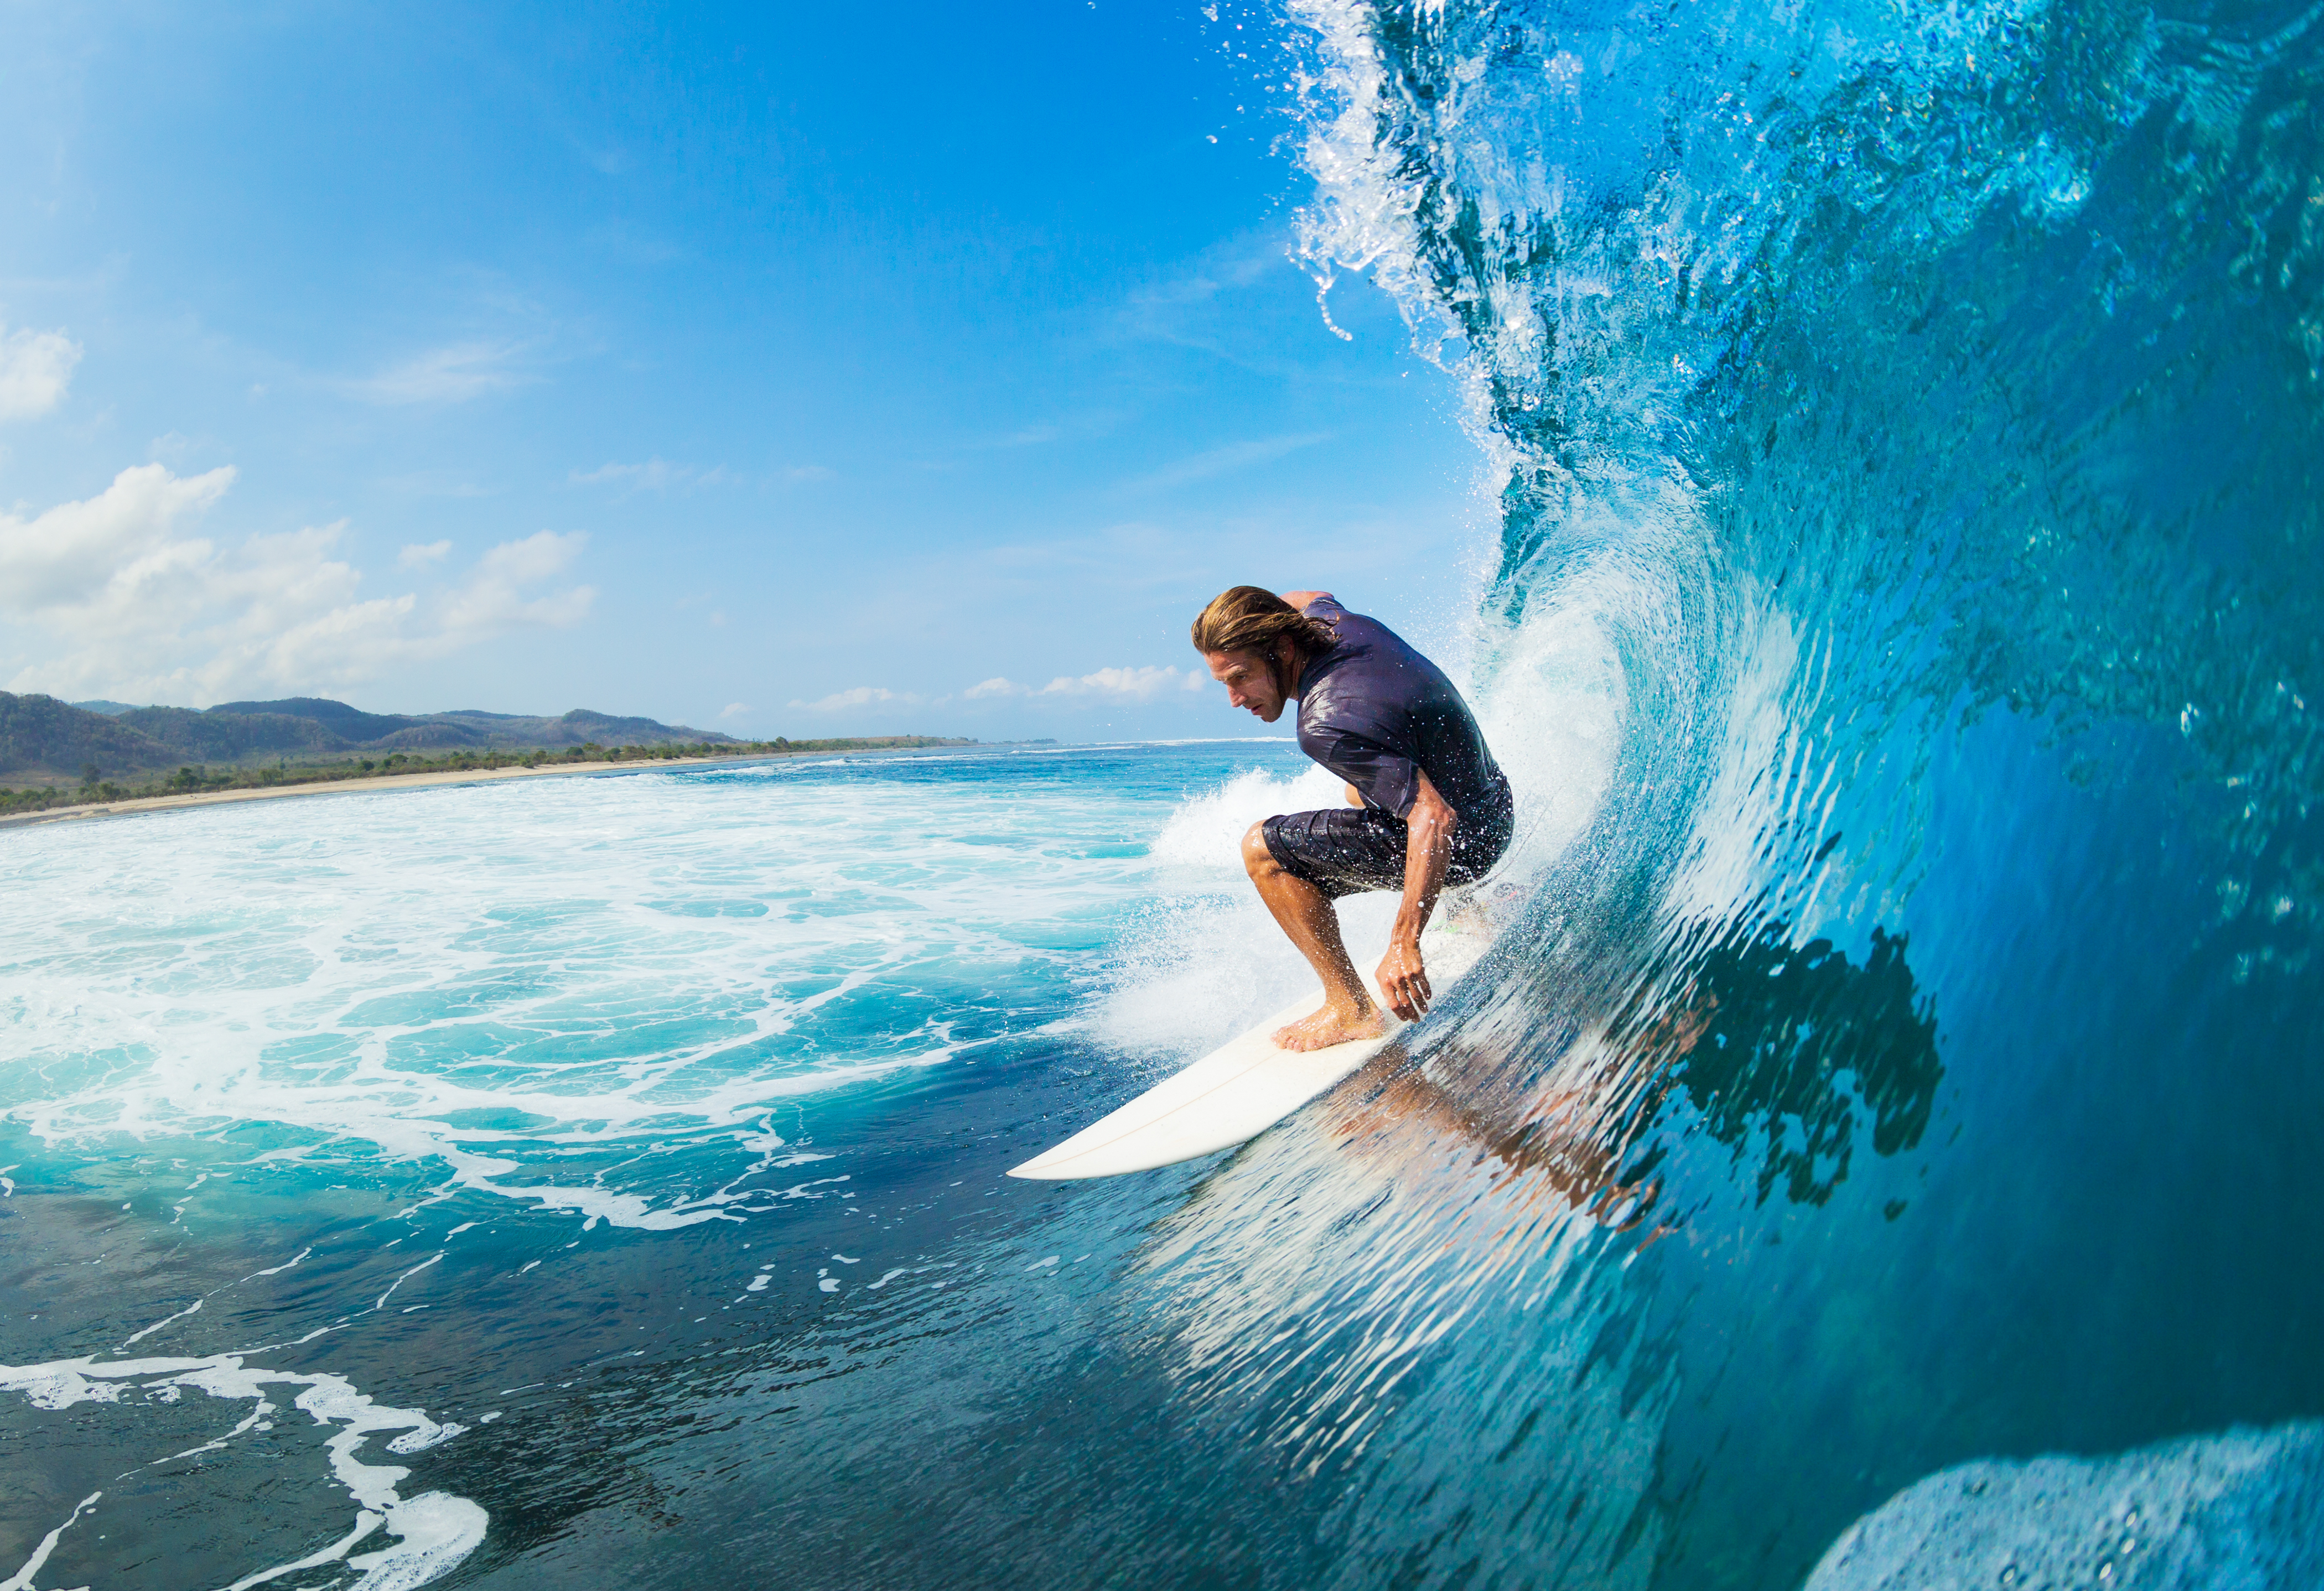 Surfing, an excellent full-body workout